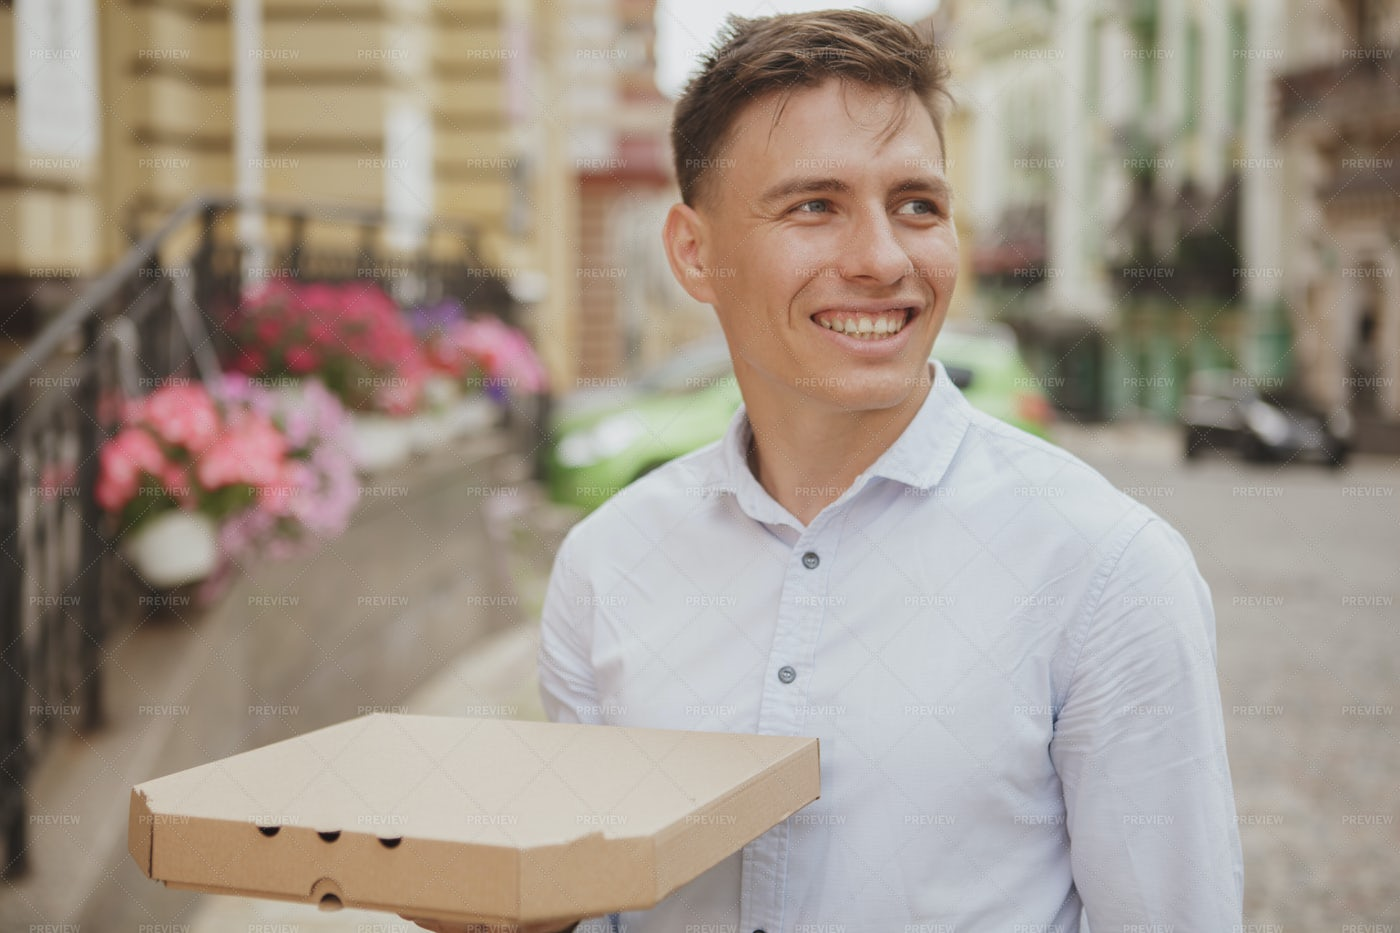 Man Has Pizza Delivered: Stock Photos